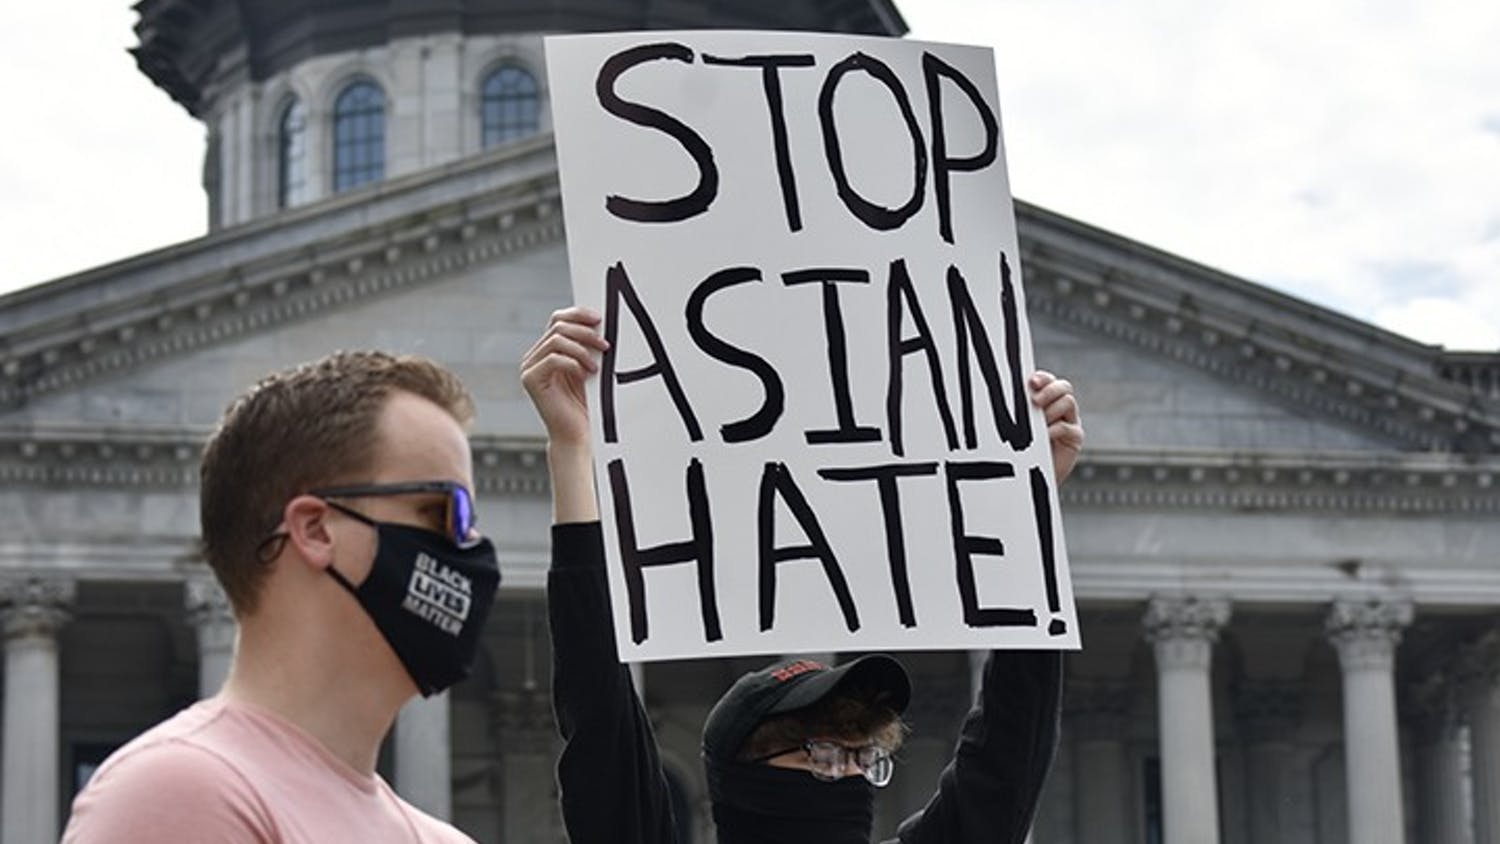 """A protestor displays a sign that reads """"STOP ASIAN HATE"""" in front of the State House on March 7, 2021."""